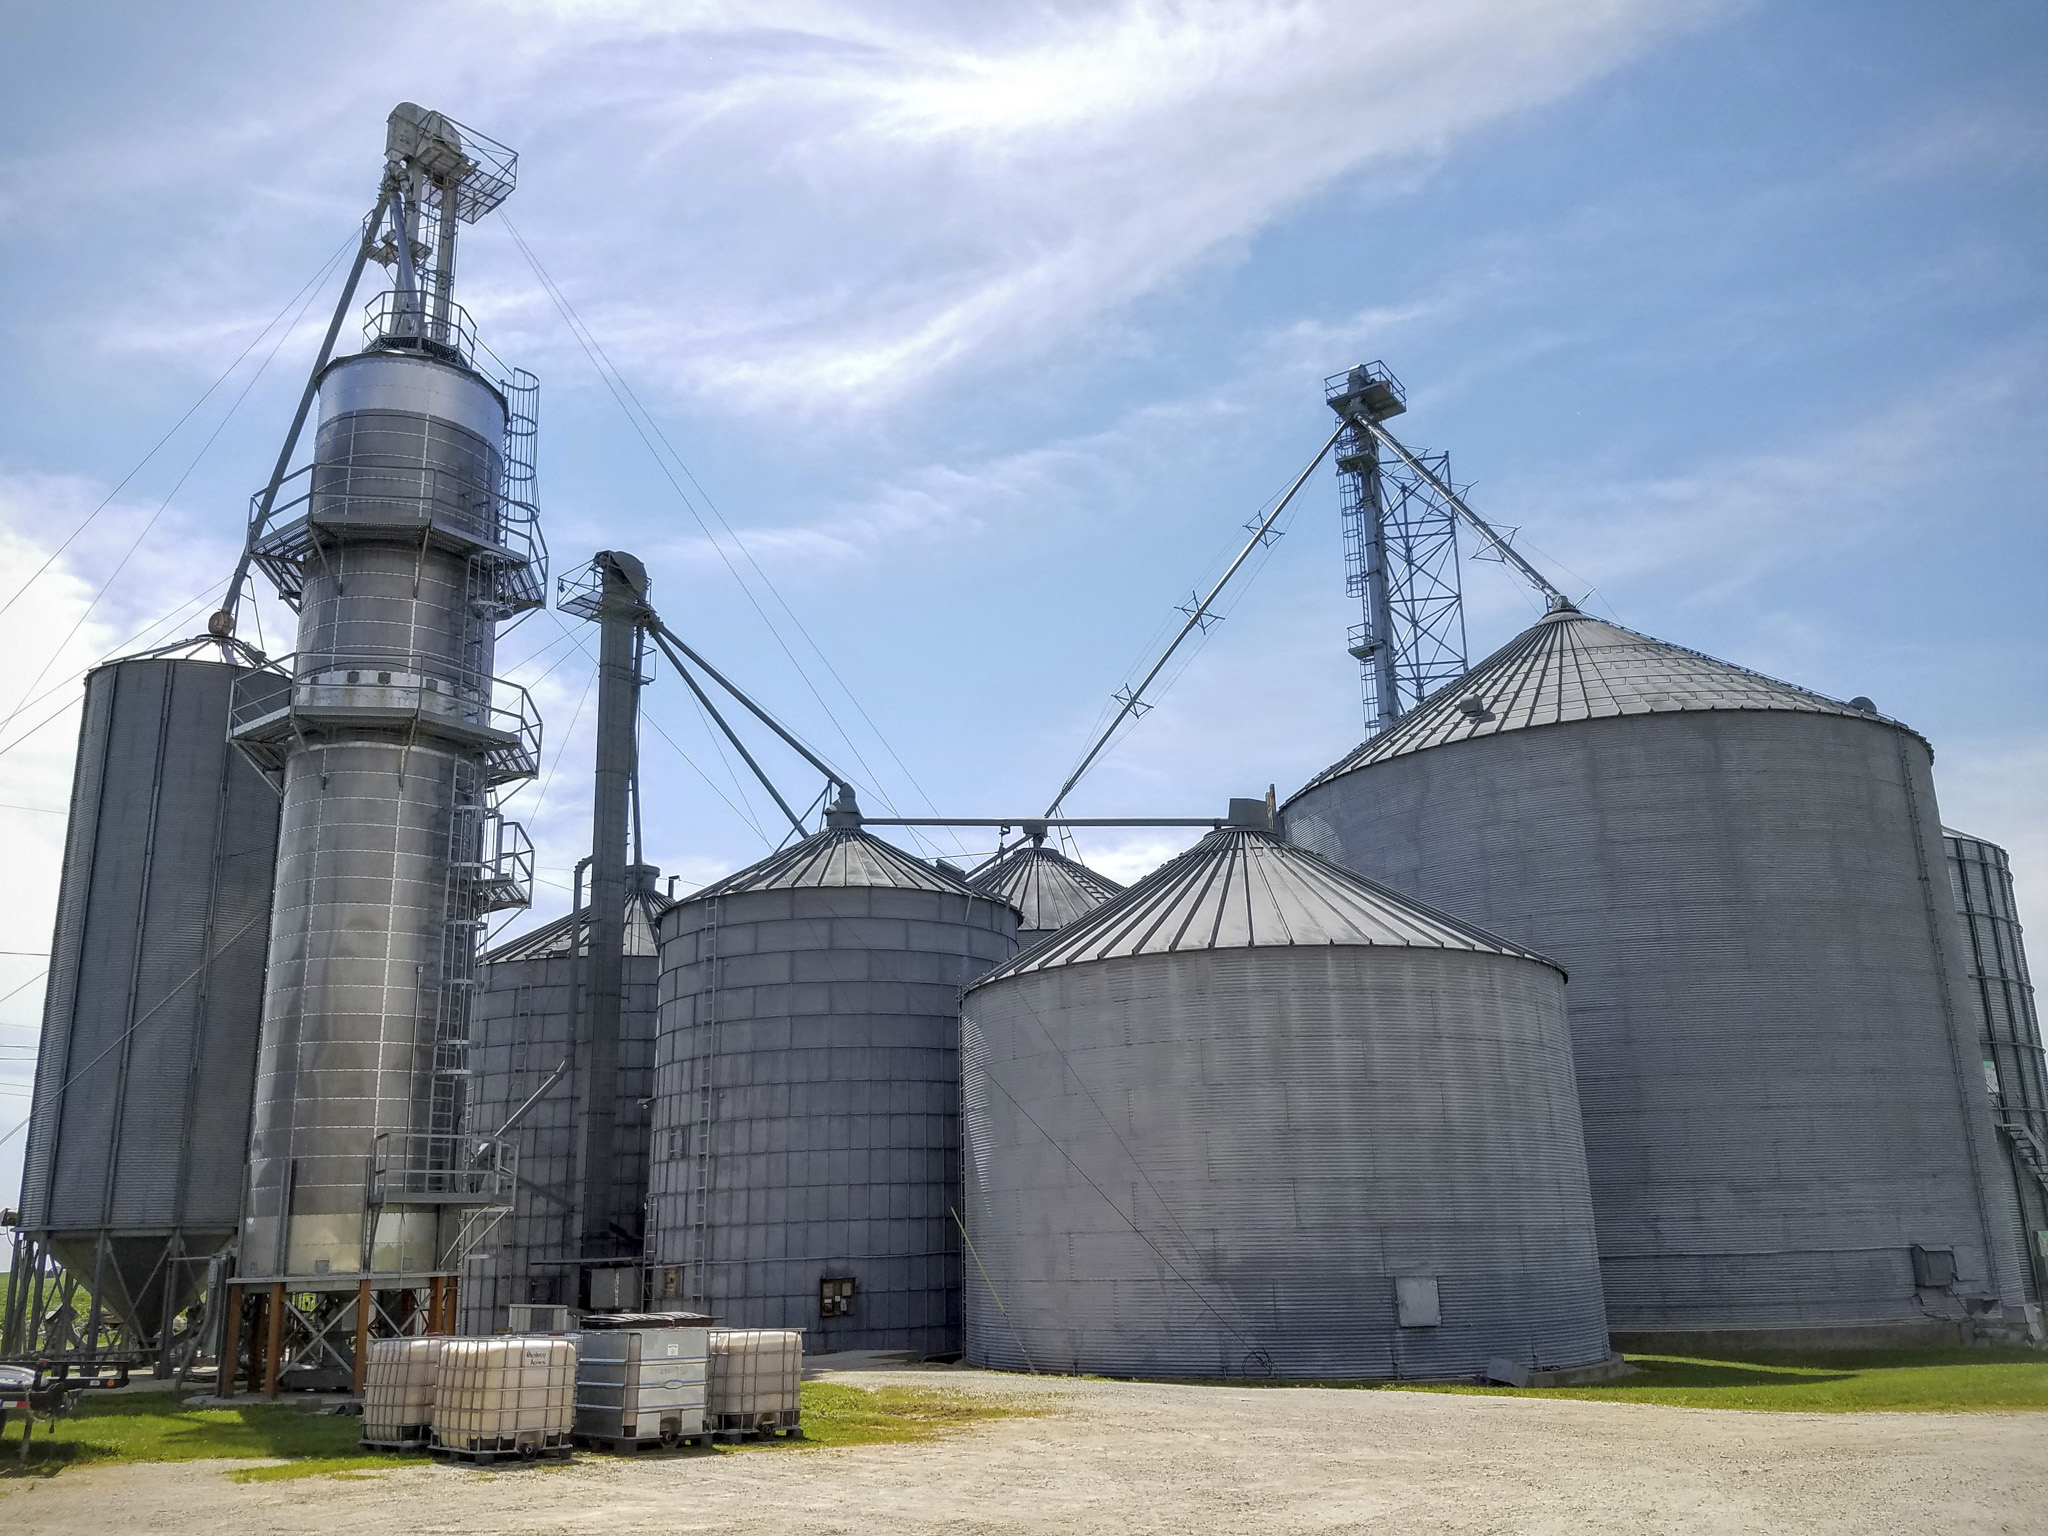 Specially designated grain storage tanks for the whiskey corn. Used to store at the proper humidity. They can store a total of about 400k bushells.